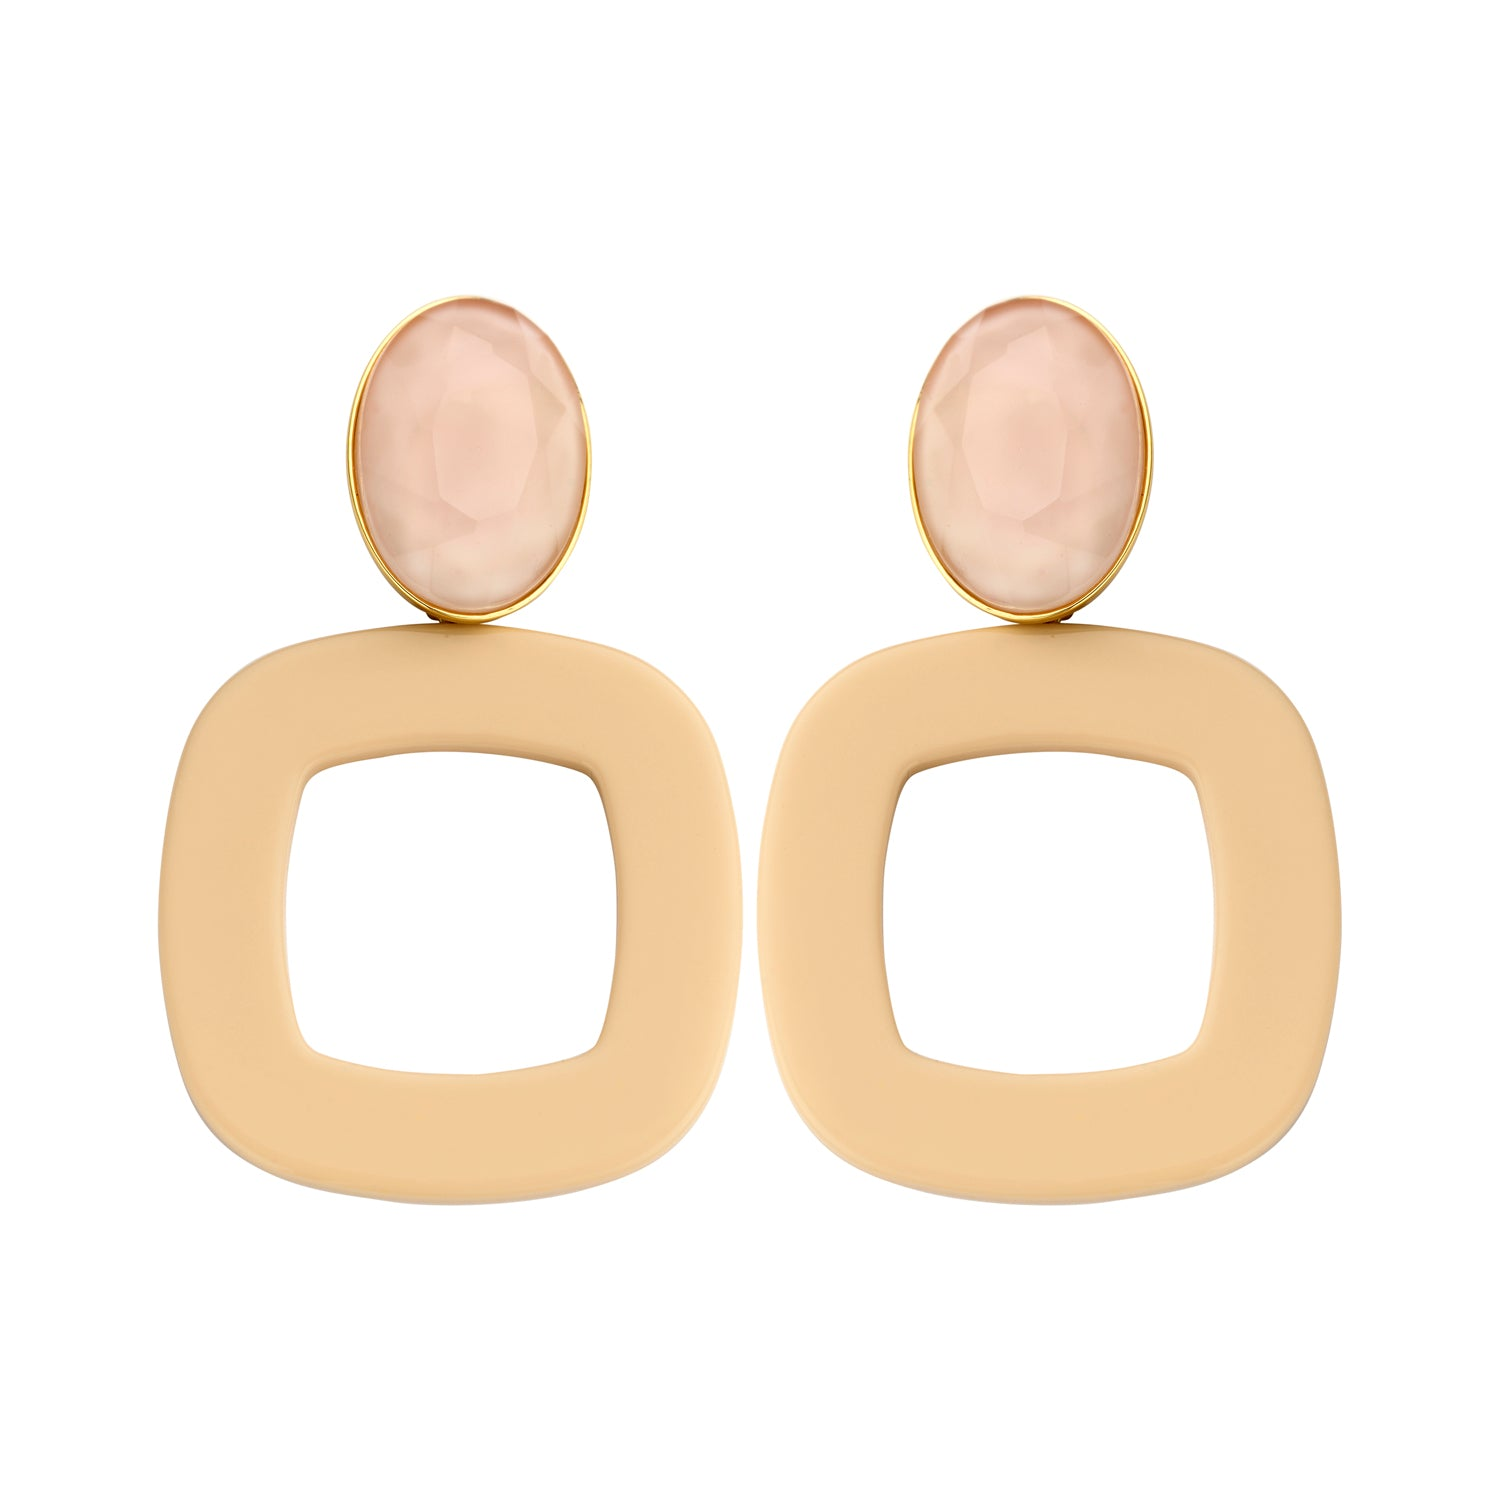 Luciana statement nude earrings - Souvenirs de Pomme